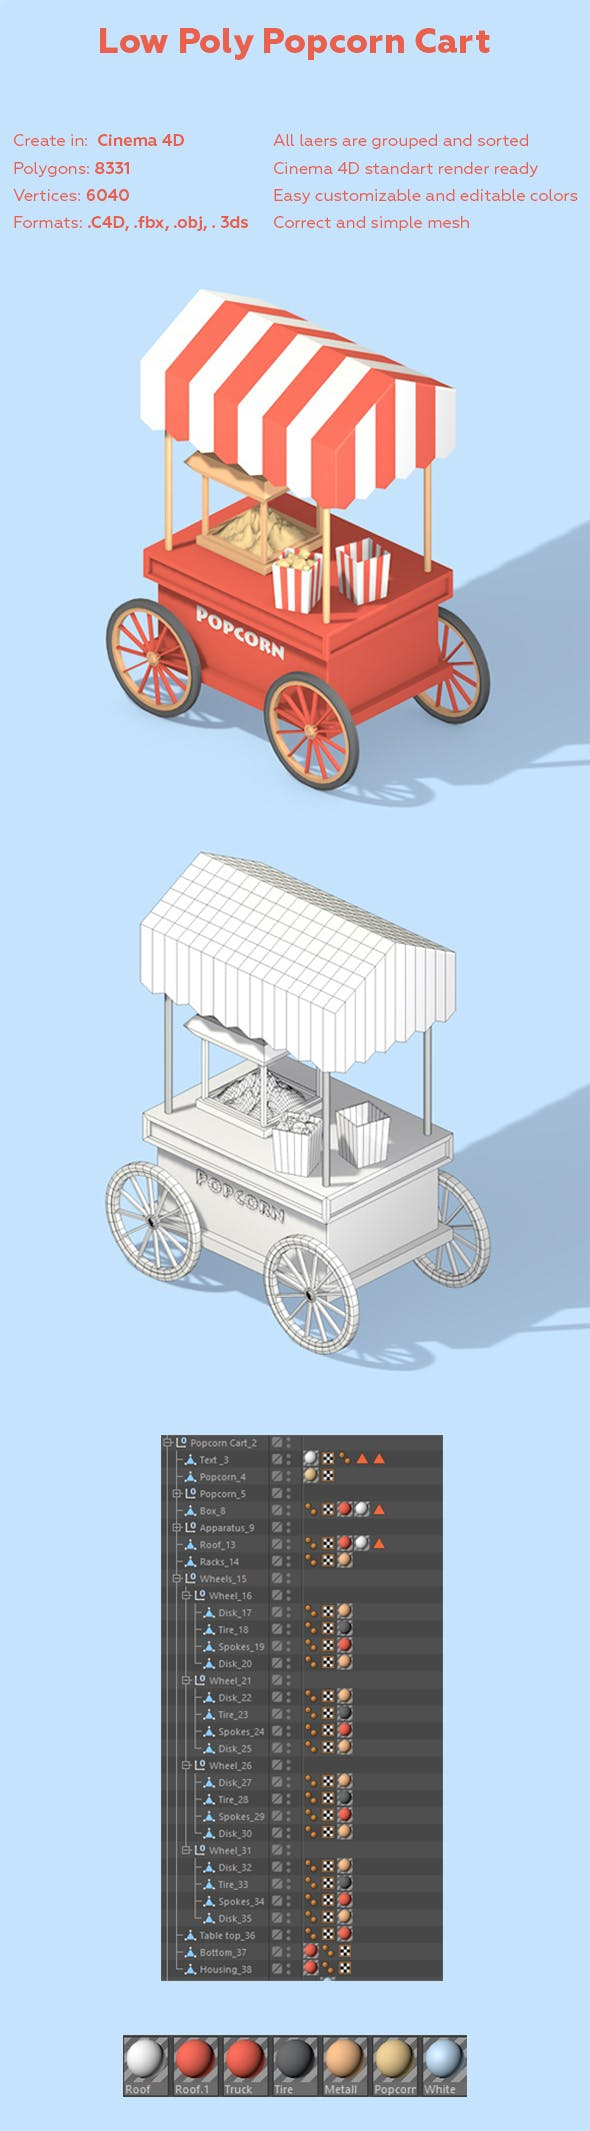 Low Poly Popcorn Cart - 3DOcean Item for Sale